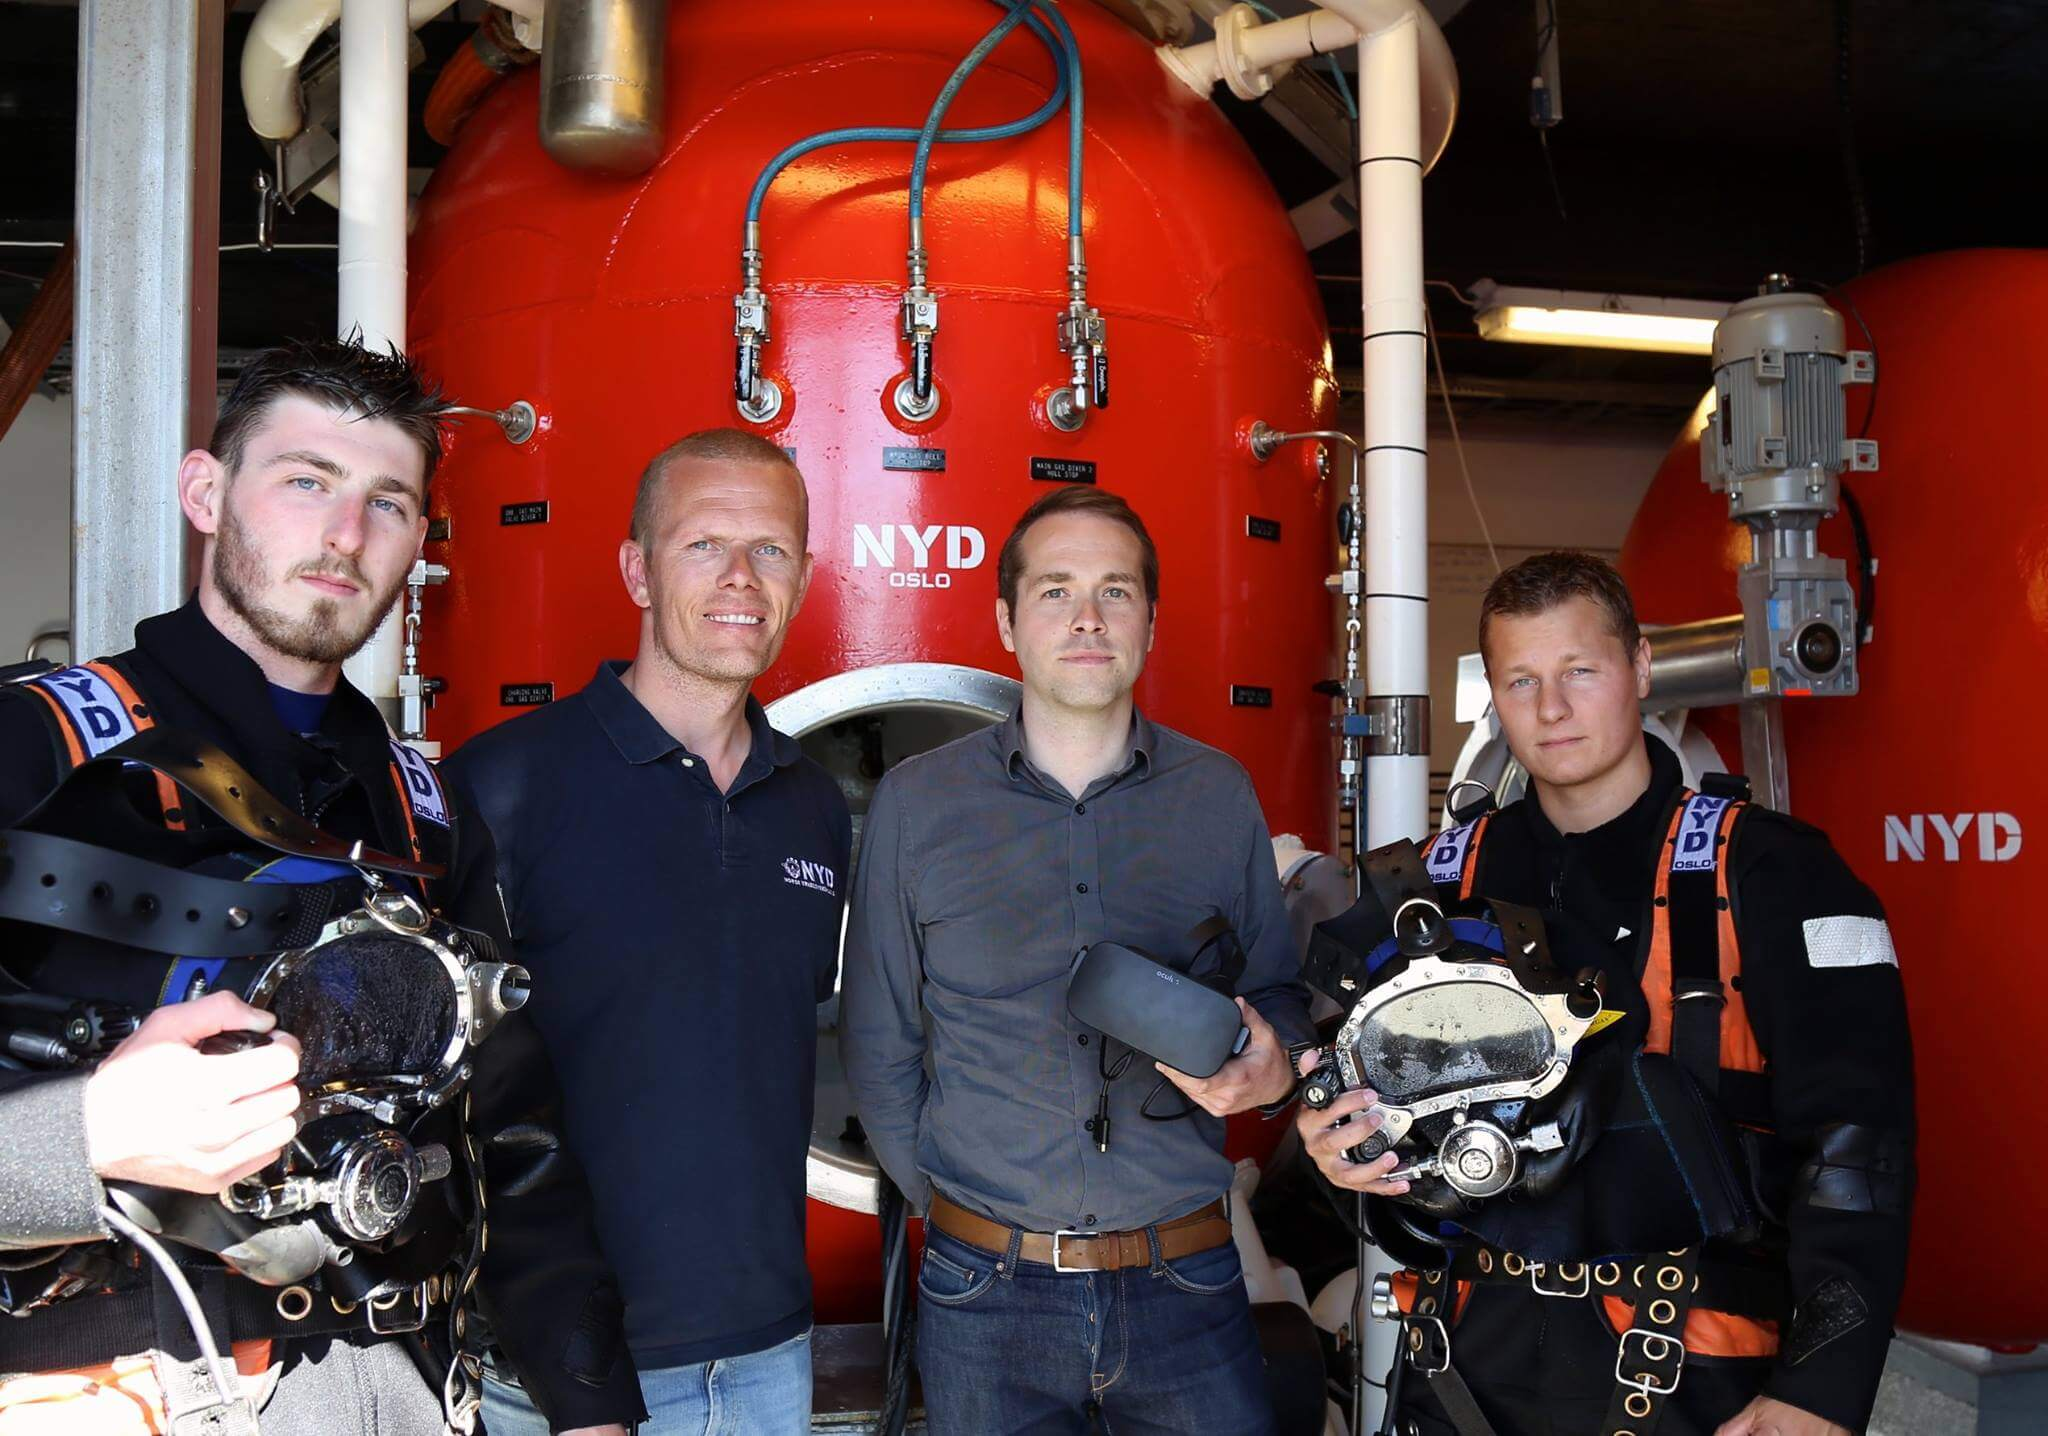 PaleBlue is a partner ofNYD – Norwegian School of Commercial Diving